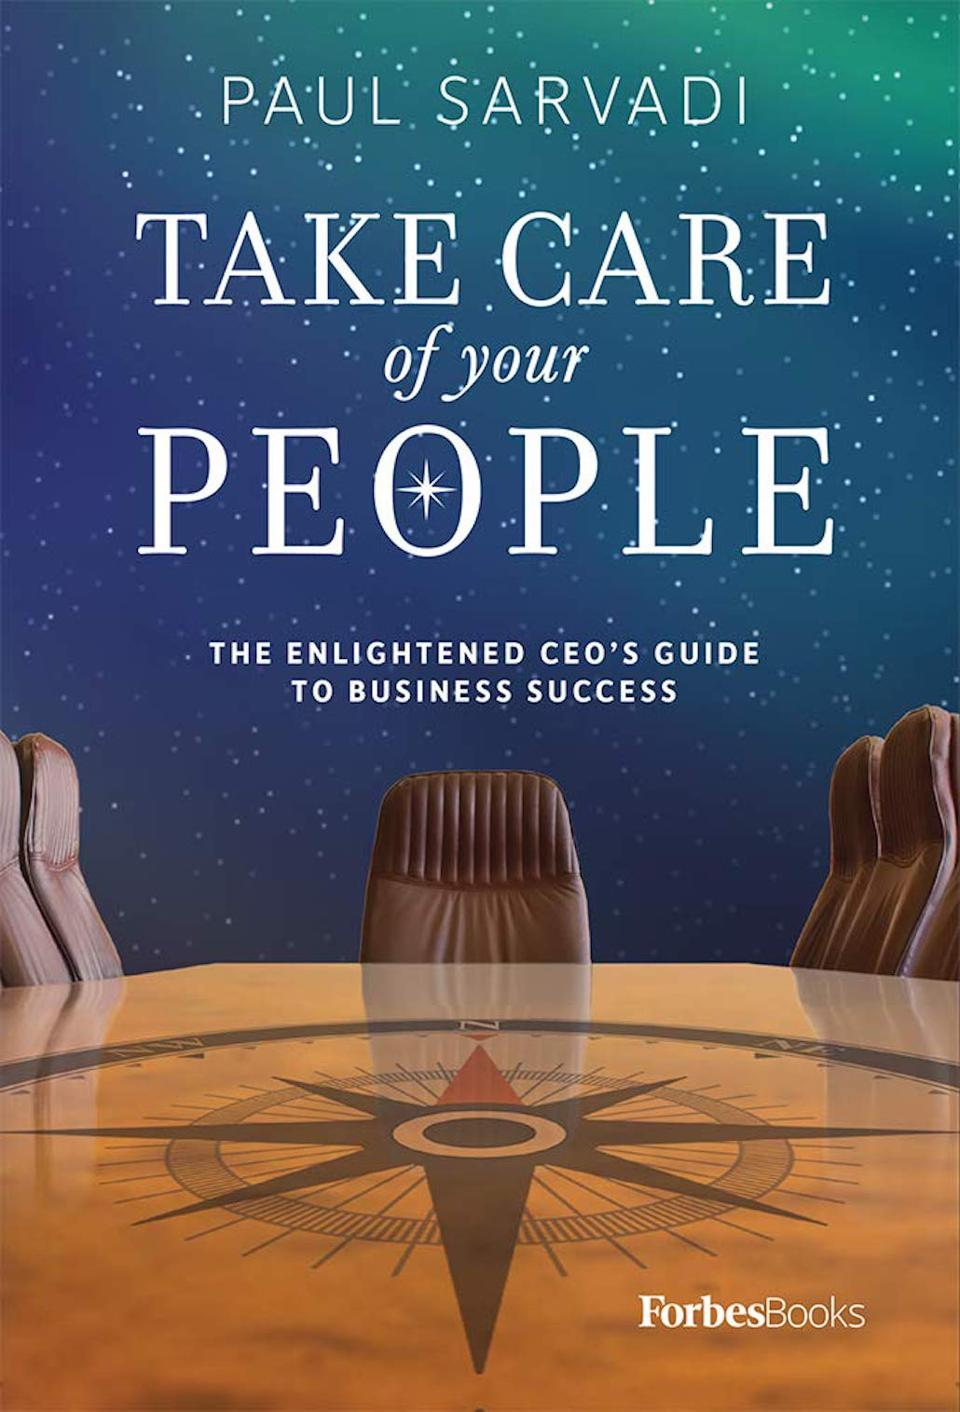 Take Care of Your People: The Enlightened CEO's Guide to Business Success by Paul Sarvadi